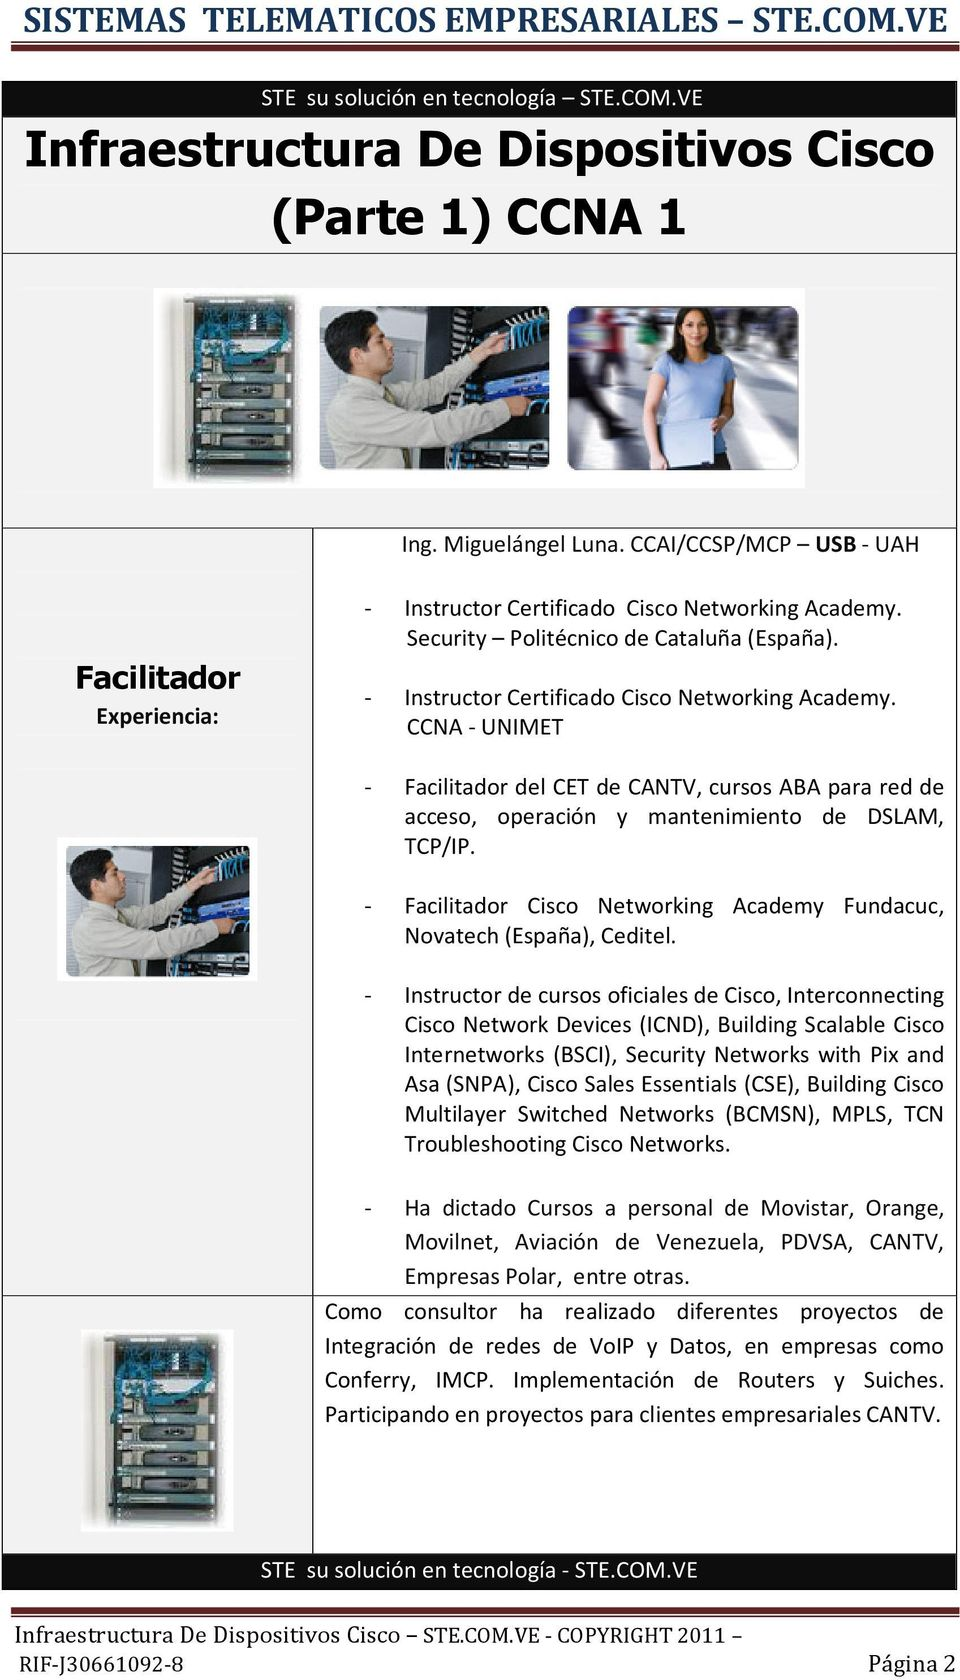 Security Politécnico de Cataluña (España). - Instructor Certificado Cisco Networking Academy.